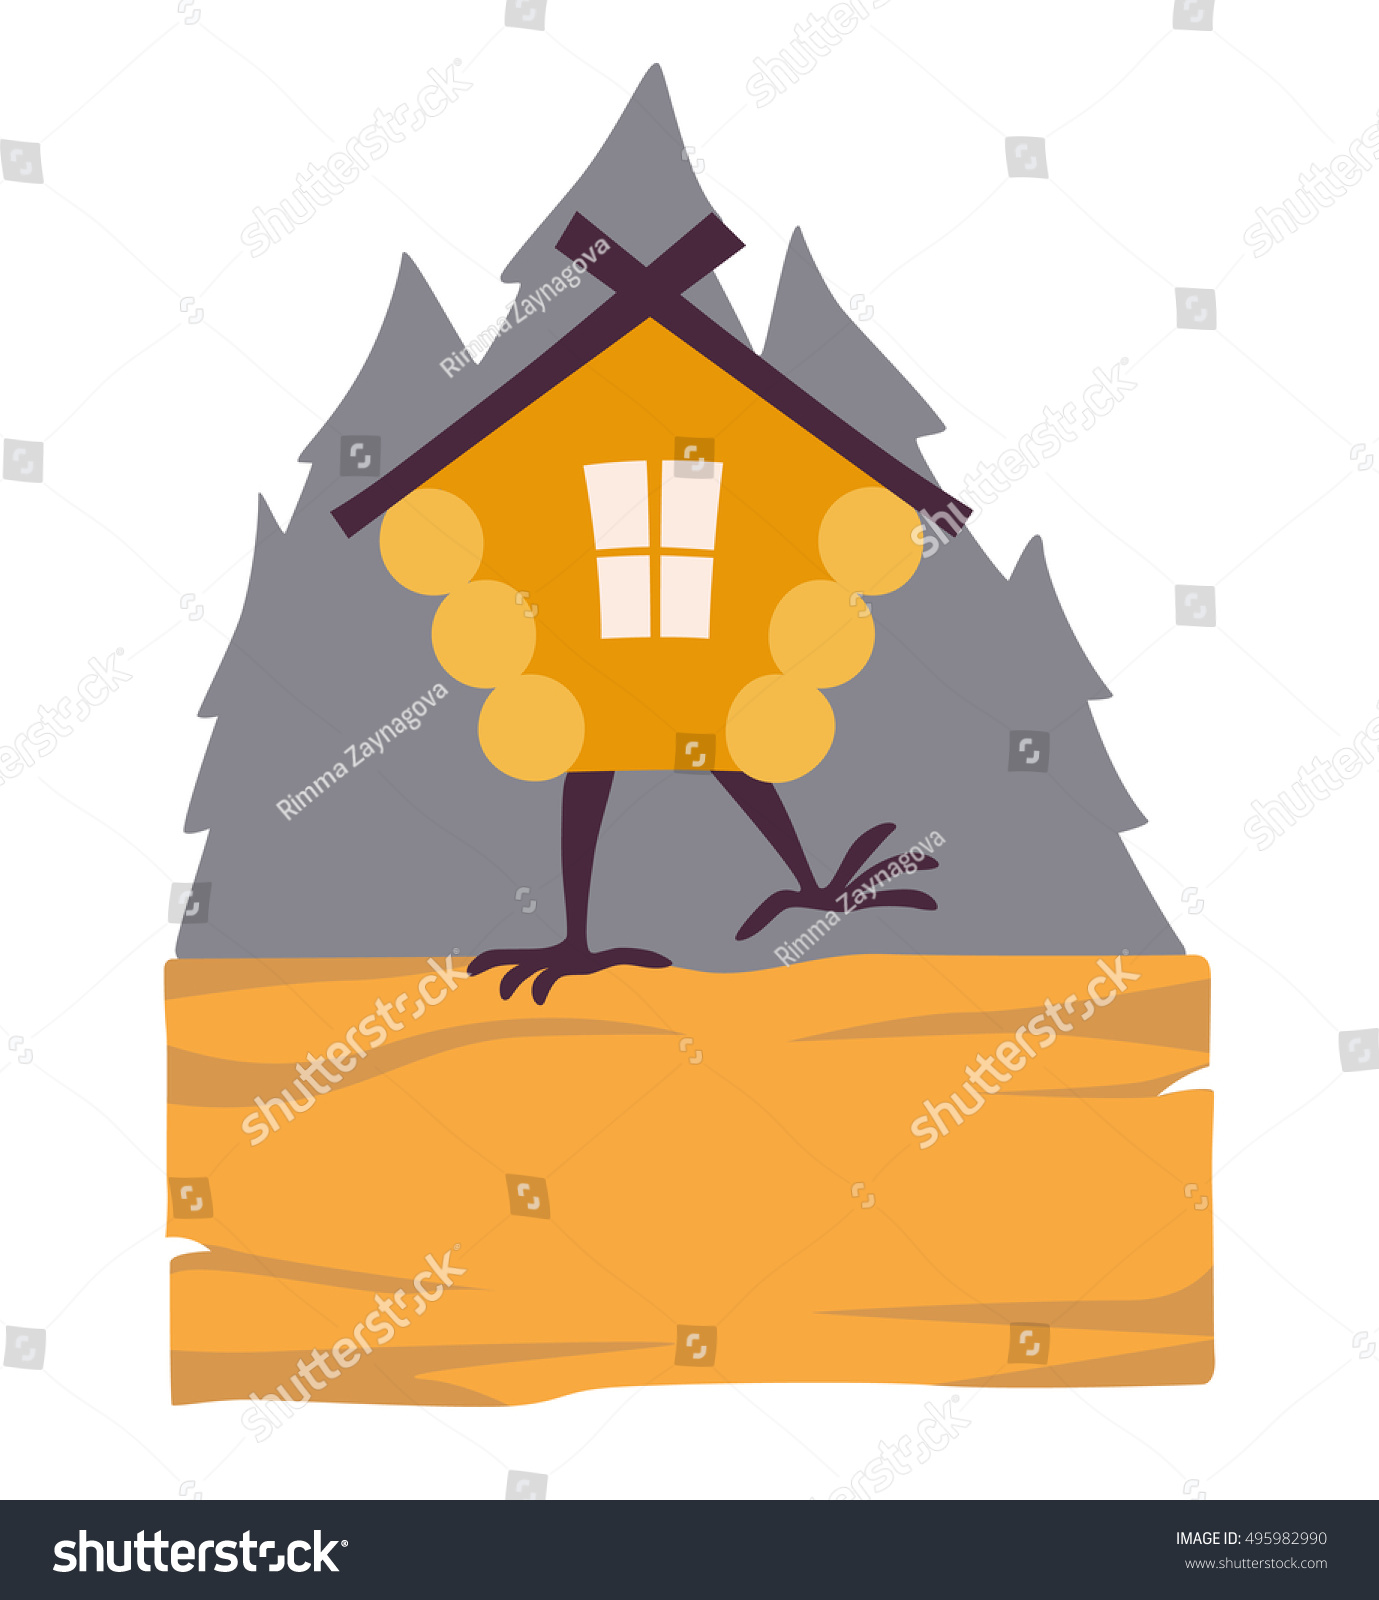 Hut House Logo: Hut Forest Vector Logo Cartoon Old Stock Vector 495982990